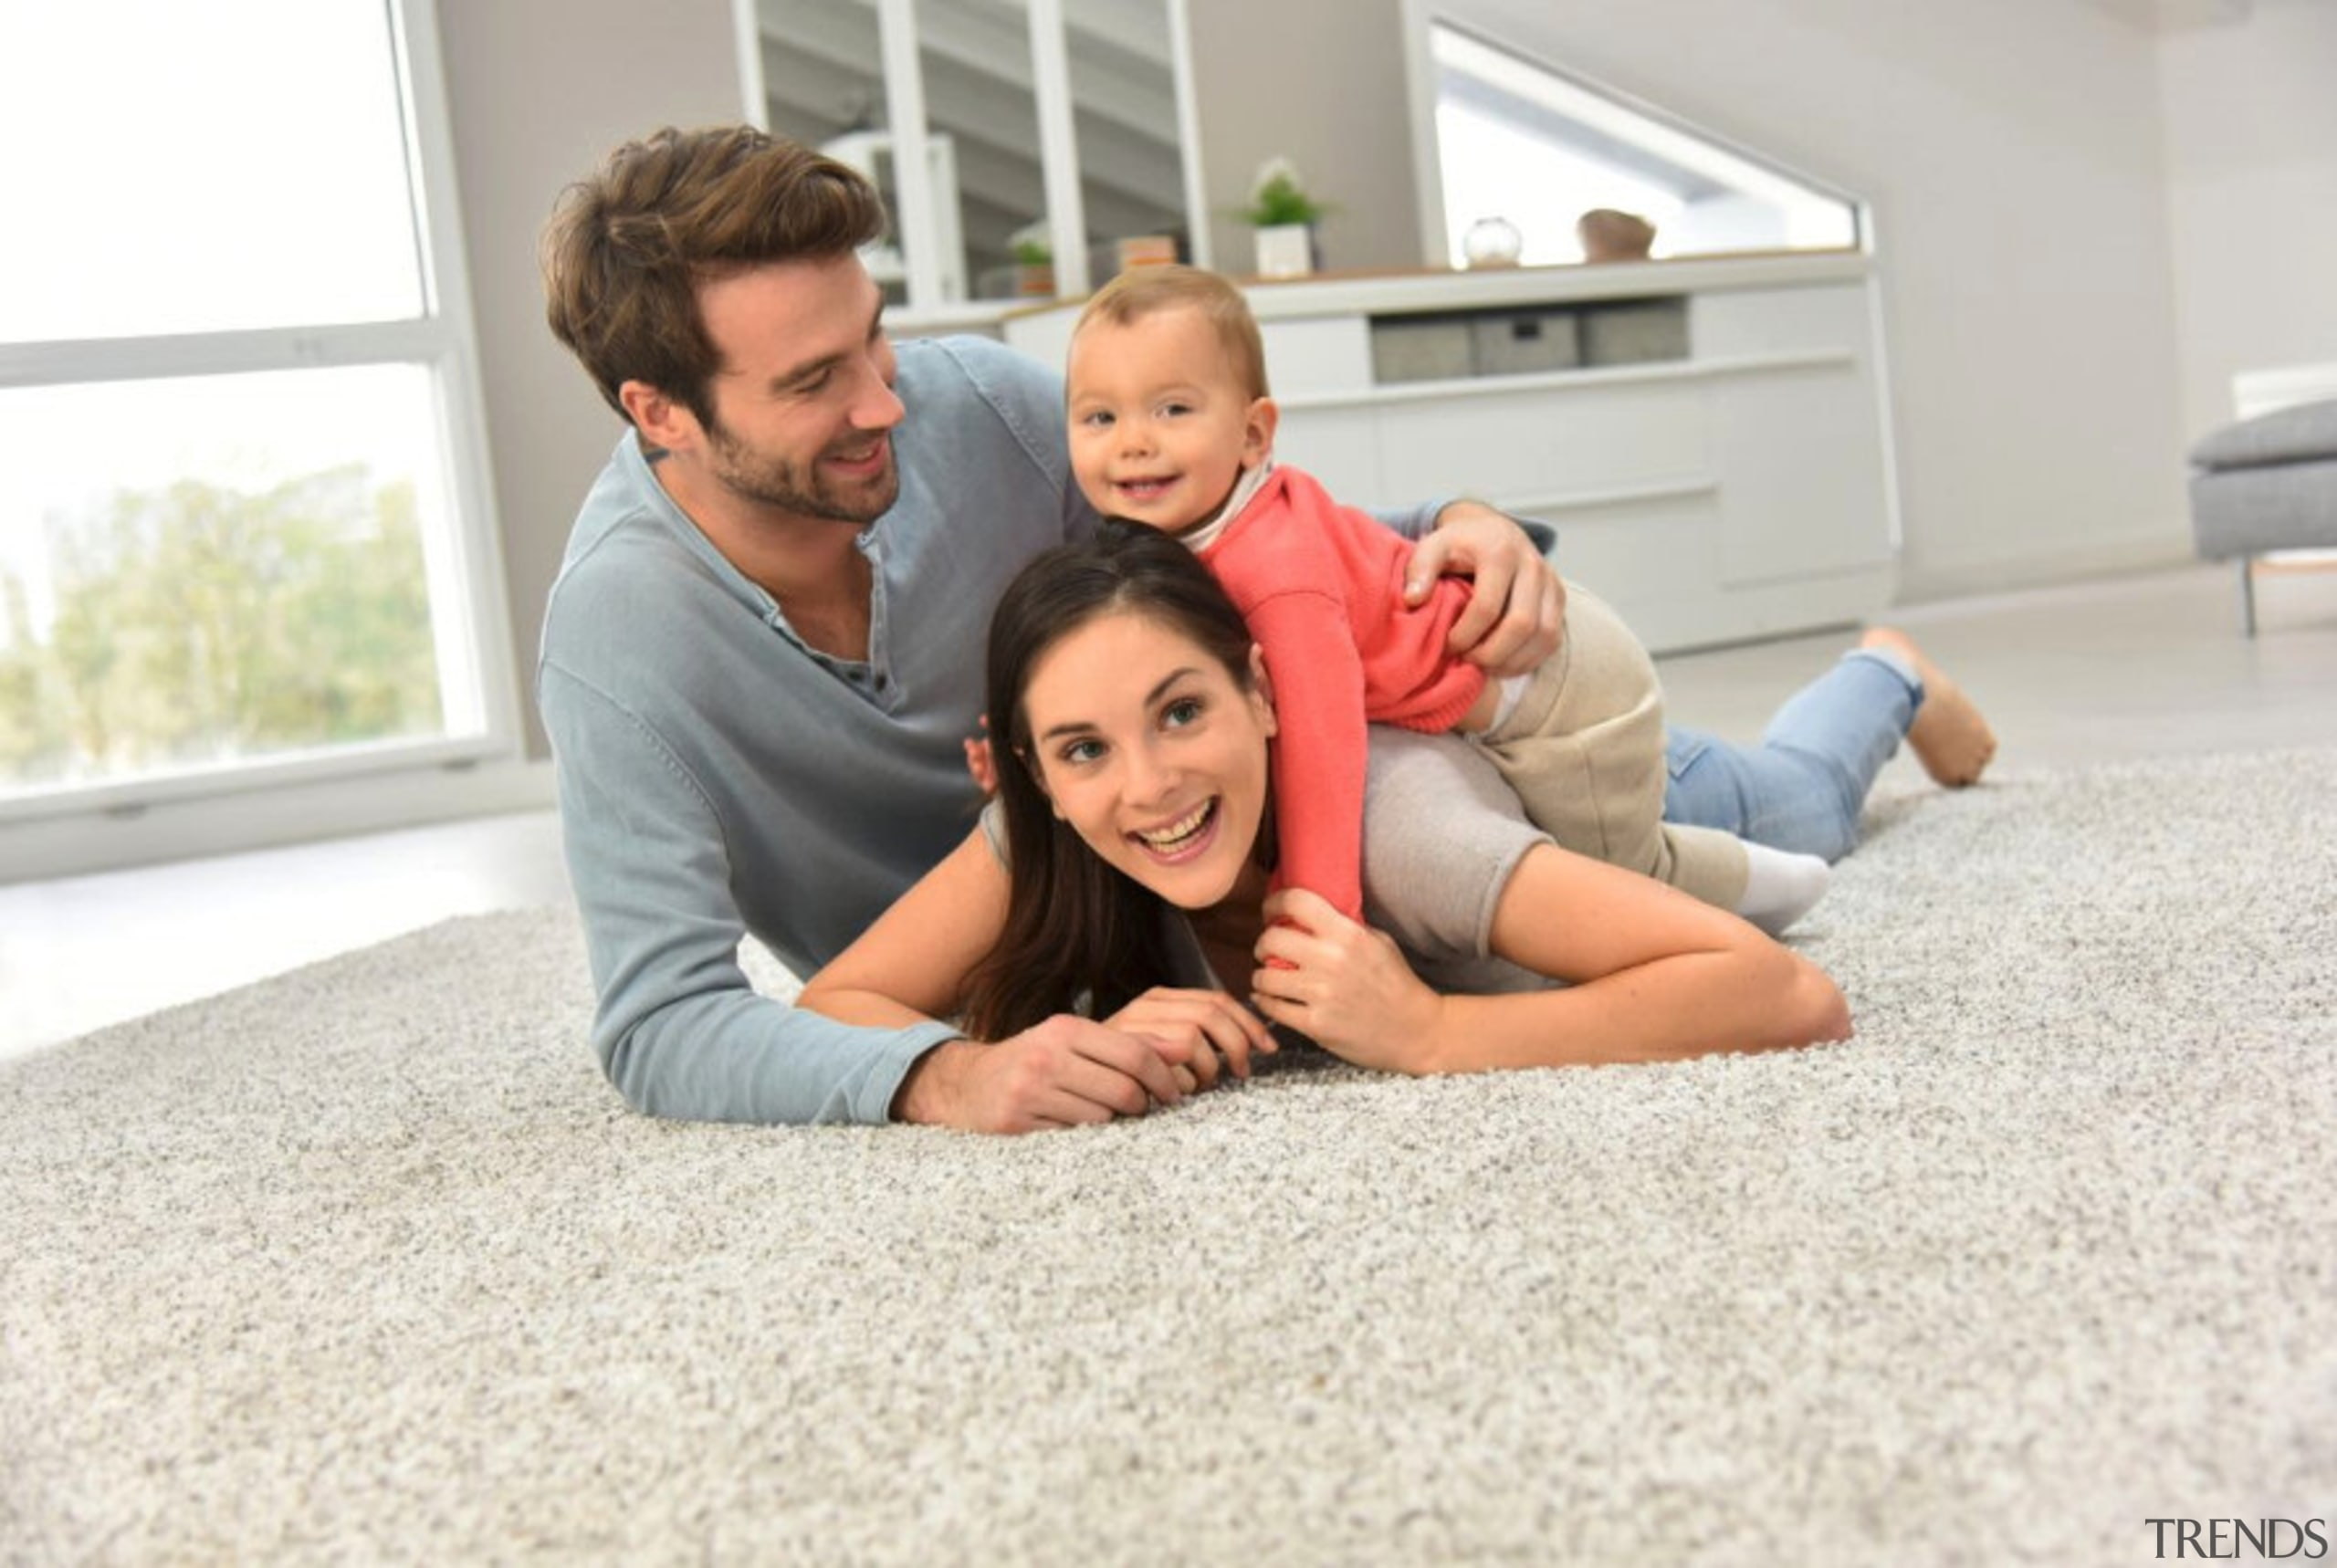 Underfloor heating - Underfloor heating - child | child, family, father, flooring, fun, people, photograph, photography, sitting, white